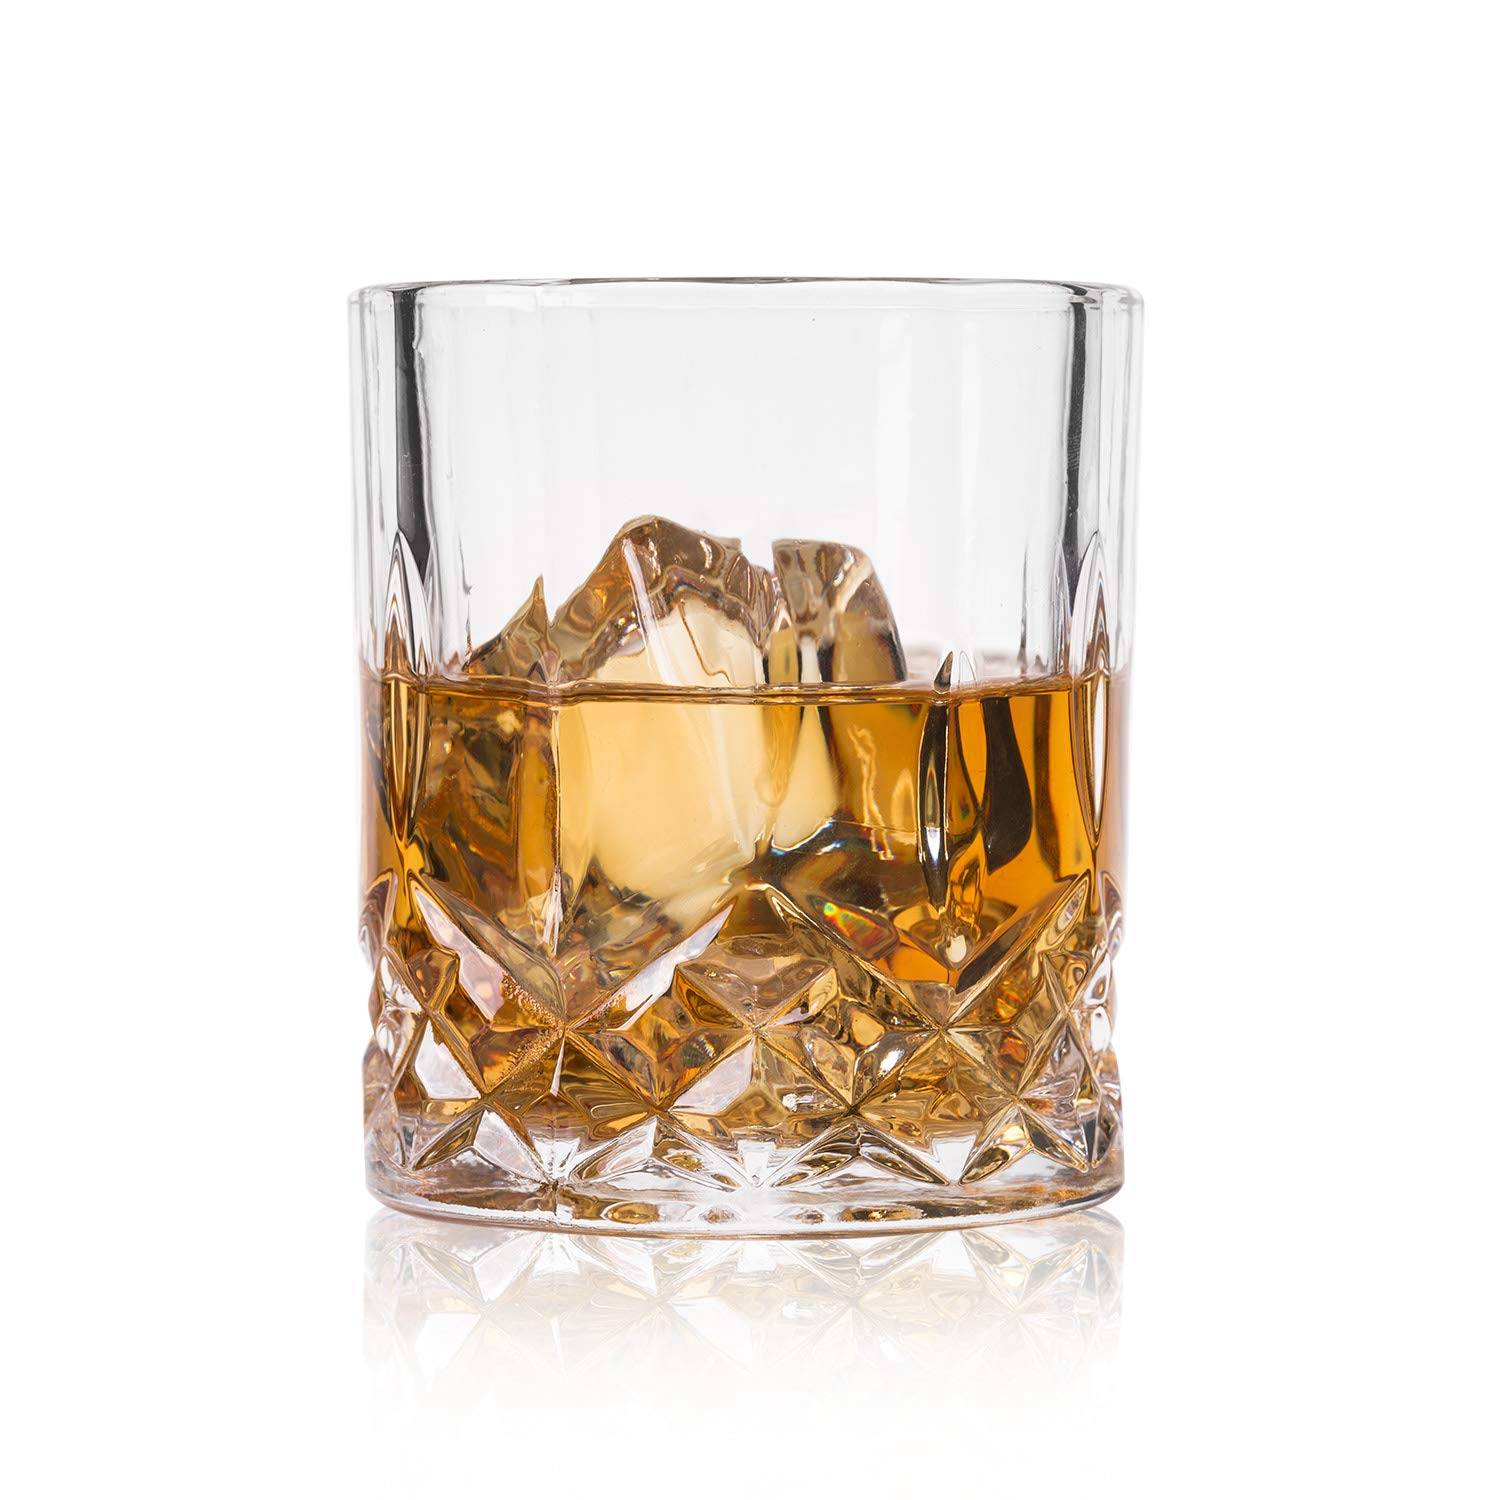 GLASKEY Whiskey Glass Set of 4-7.5 oz Lead Free Crystal Old Fashioned Glass, Cocktail Cool Rocks Glass Tumbler for Bourbon, Irish Whisky, Brandy and More, Scotch Glasses Featured Image